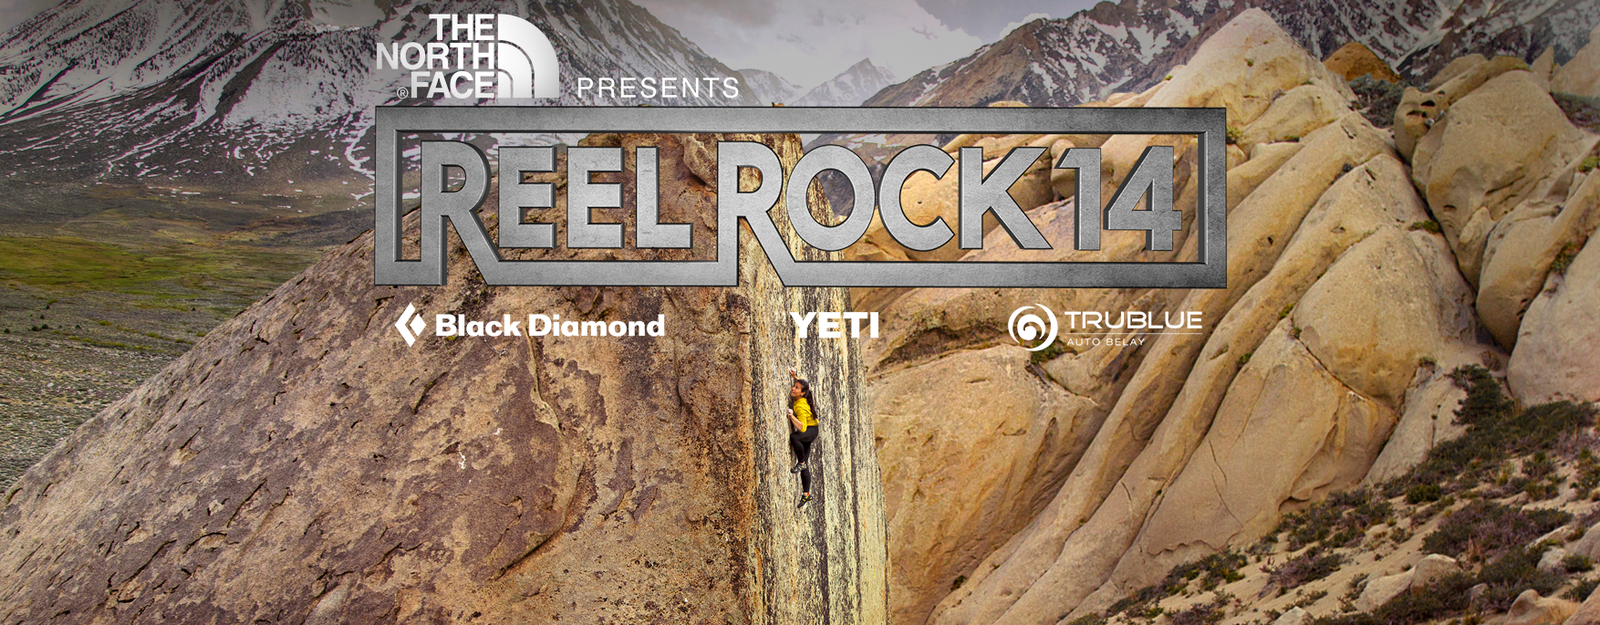 Nina Williams boulders a high ball in Bishop, CA, as the background to the Reel Rock 14 title (The North Face presents: Reel Rock 14. Sponsors: Black Diamond, Yeti, TruBlue Autobelay)